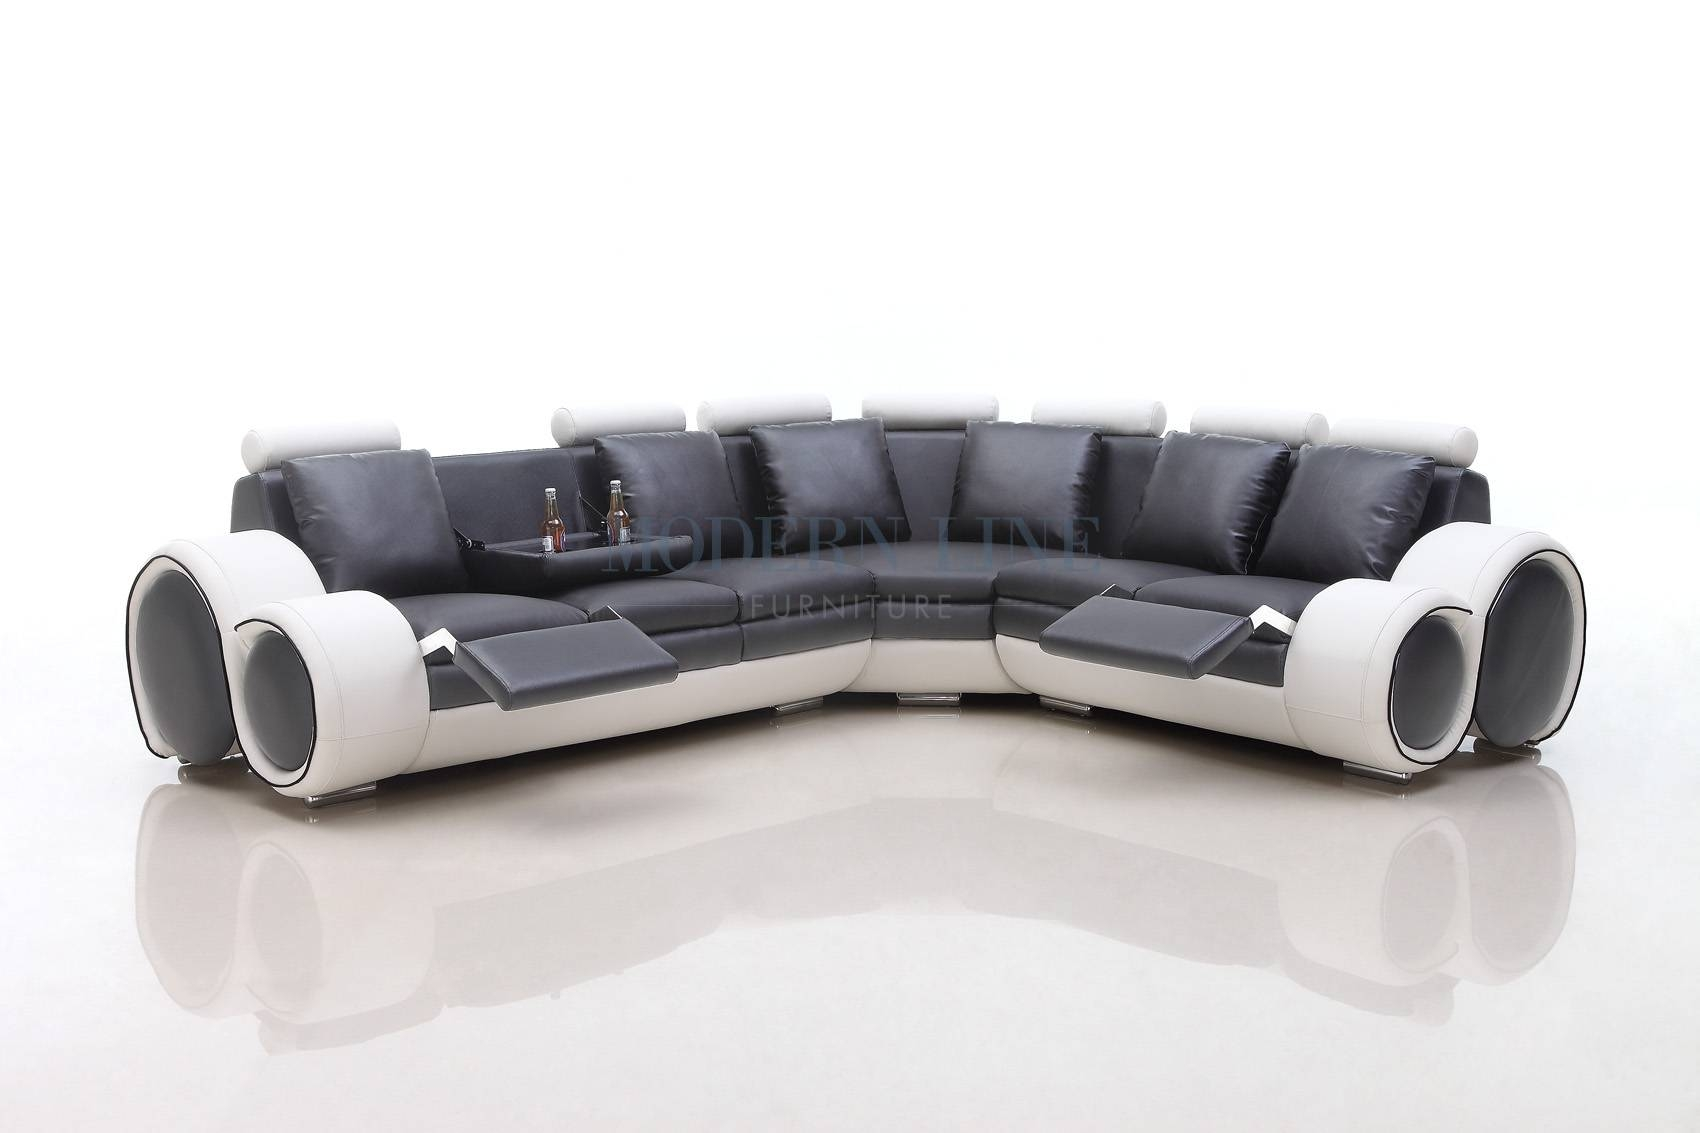 Modern Line Furniture – Commercial Furniture – Custom Made Intended For Sofas With Console (View 12 of 15)